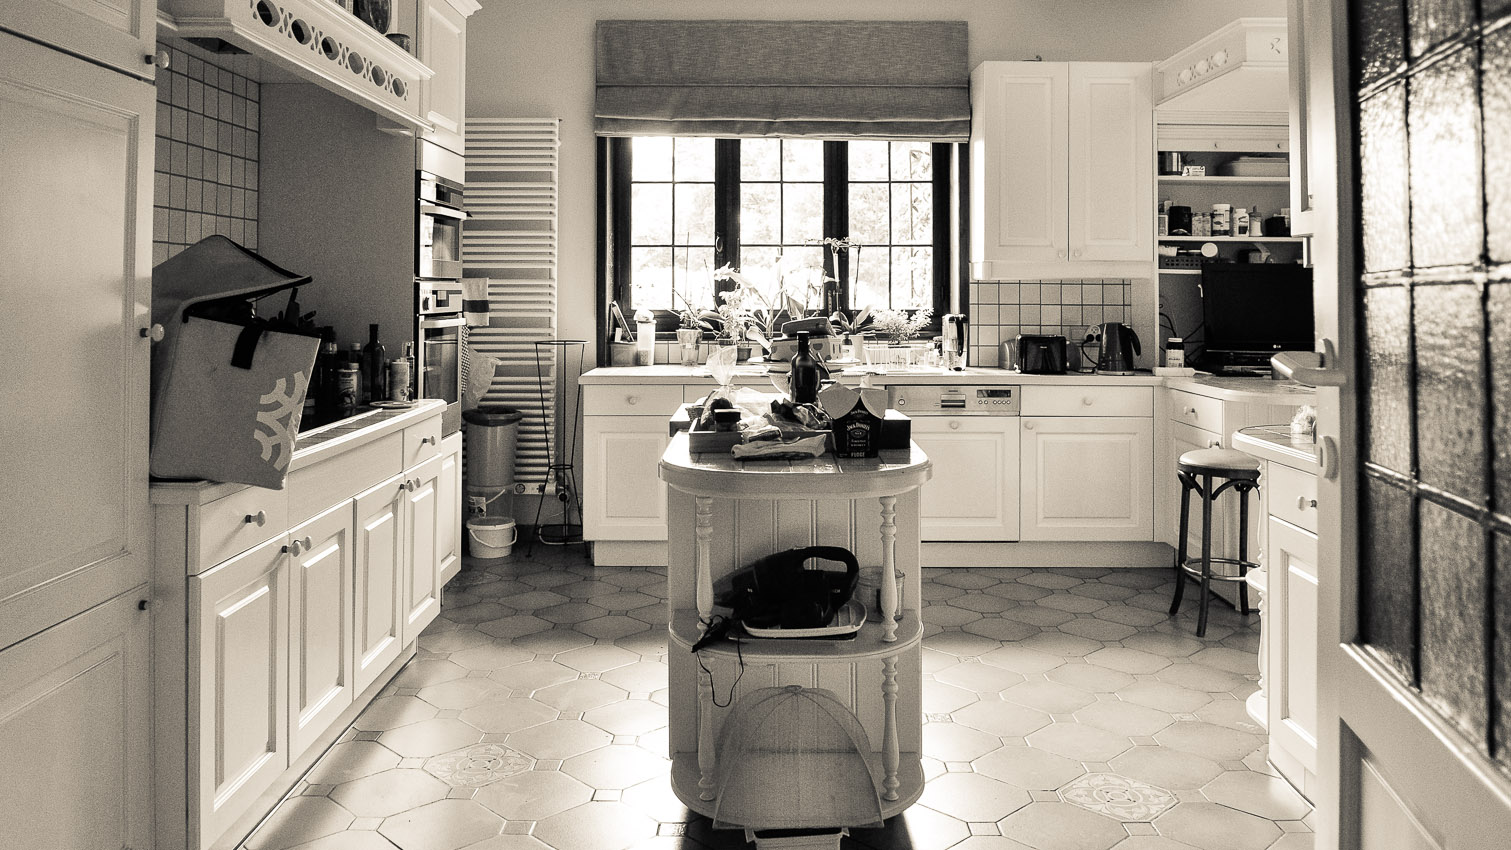 17s-cuisine-kitchen-location-vente-decors-film-cinema-photo-belgium-bruxelles